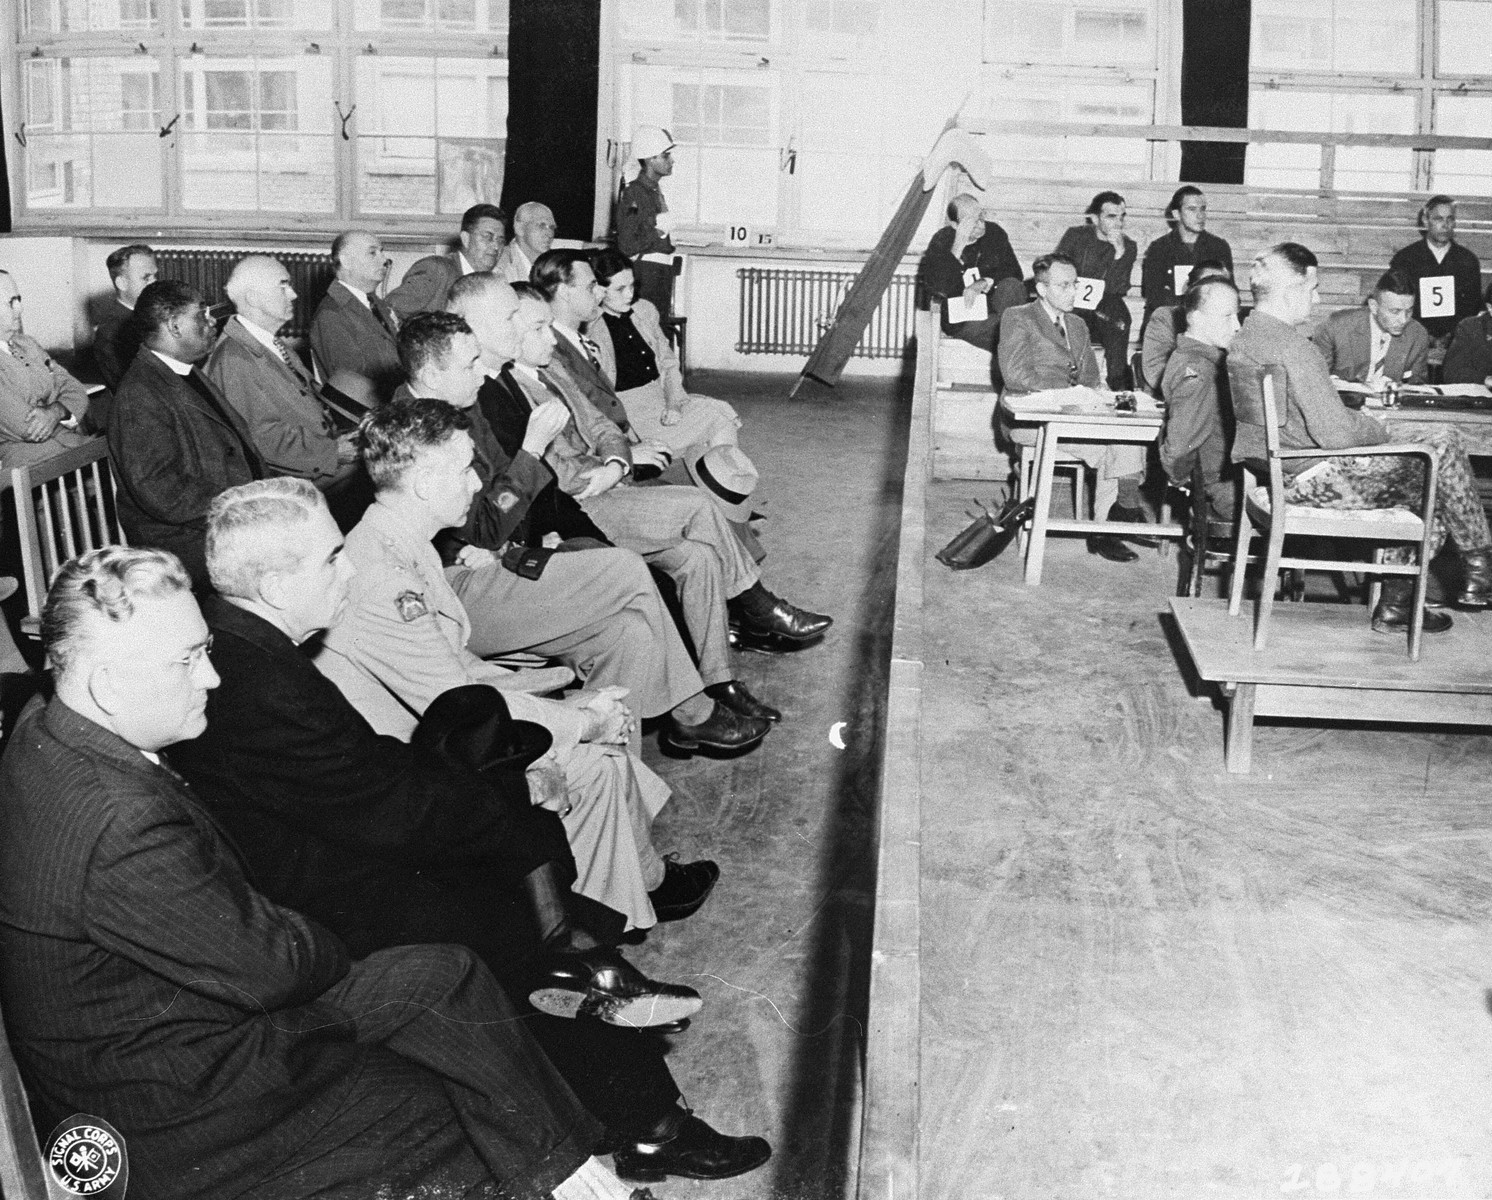 A group of fourteen American clergymen (left) attend the trial of former camp personnel and prisoners from Buchenwald during their tour of camp sites in 1947.